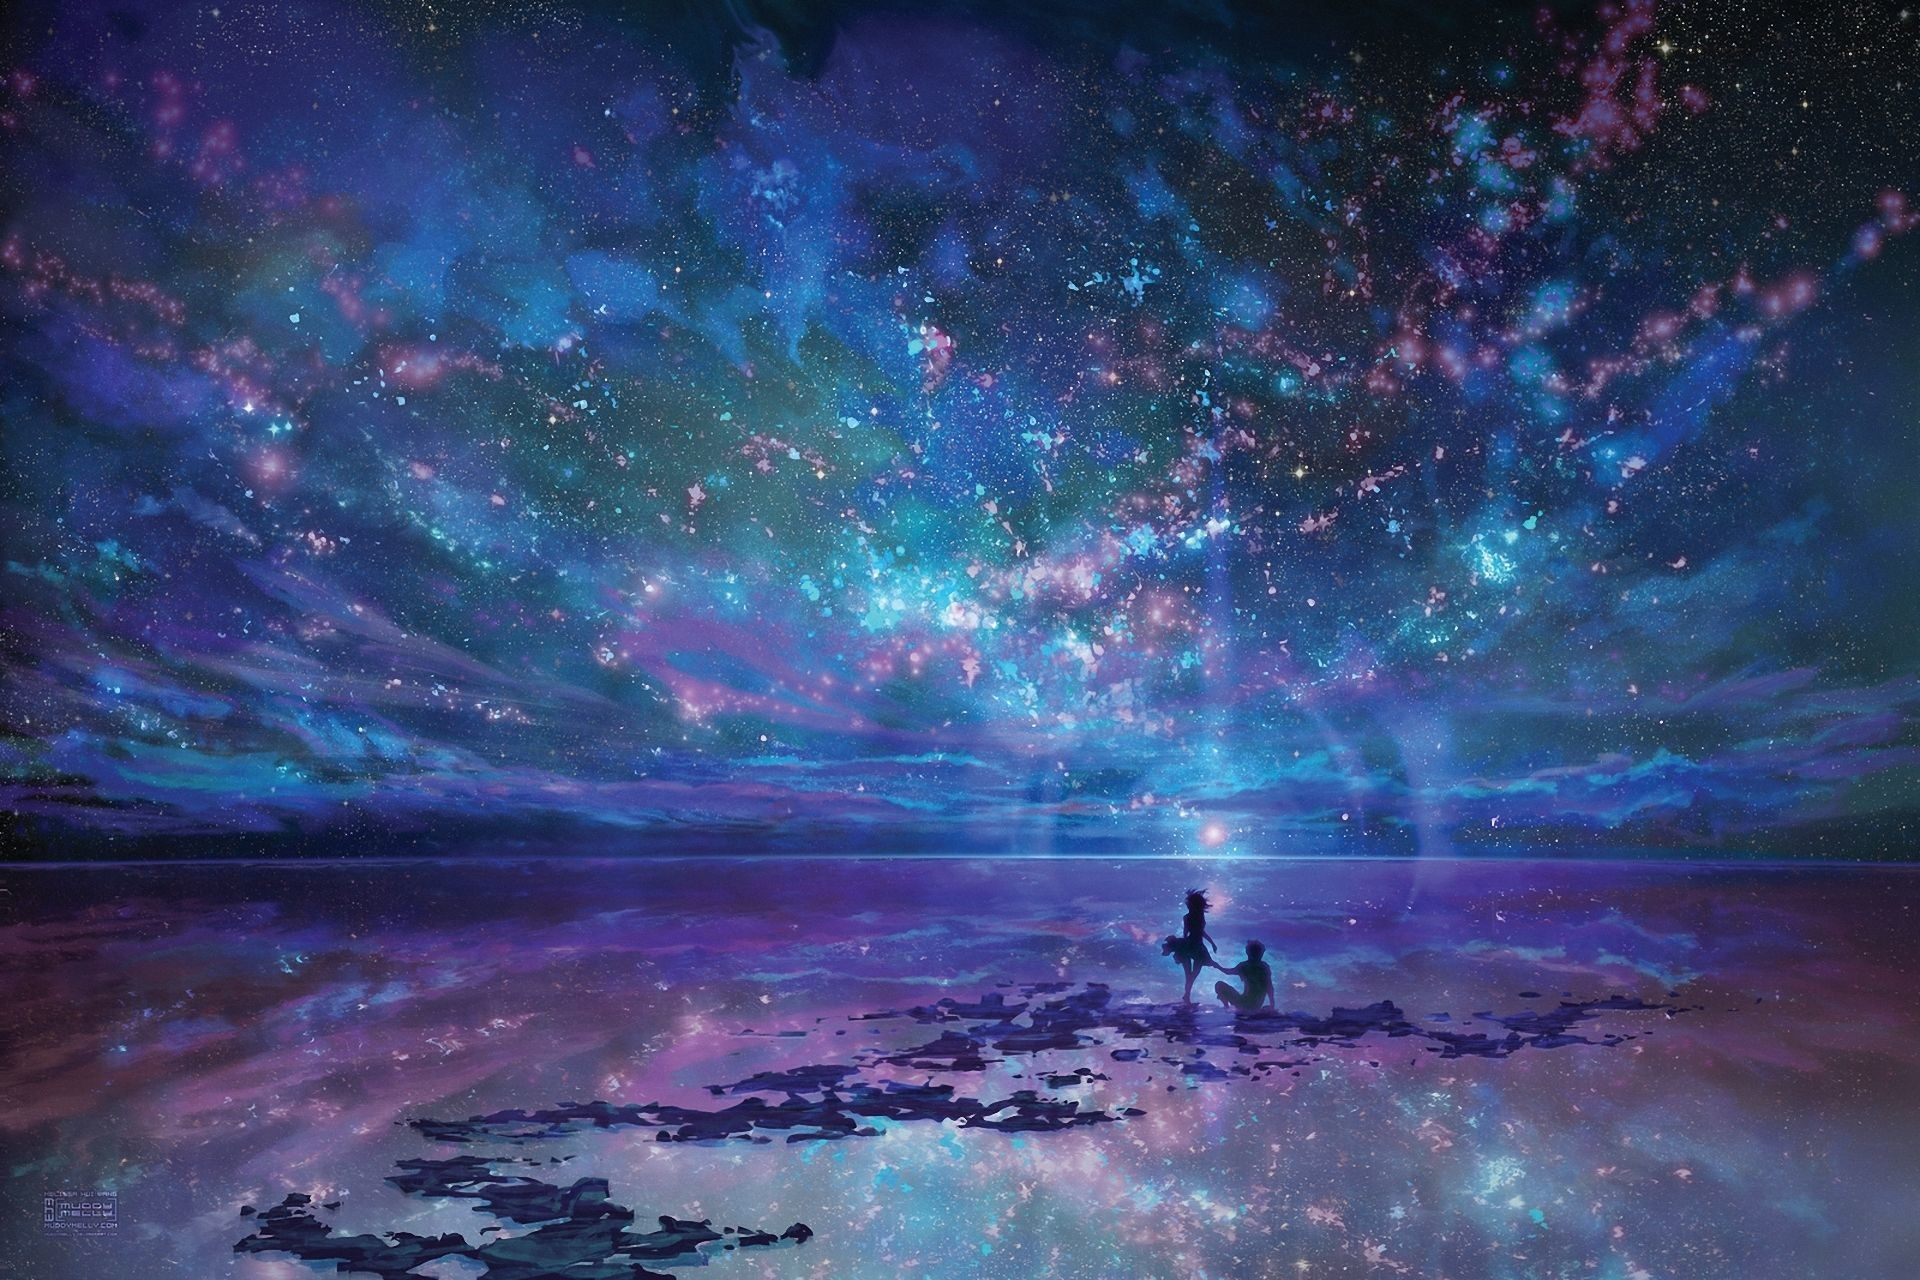 Res: 1920x1280, Anime Sky Anime Blue Purple Reflection Couple Ocean Wallpaper